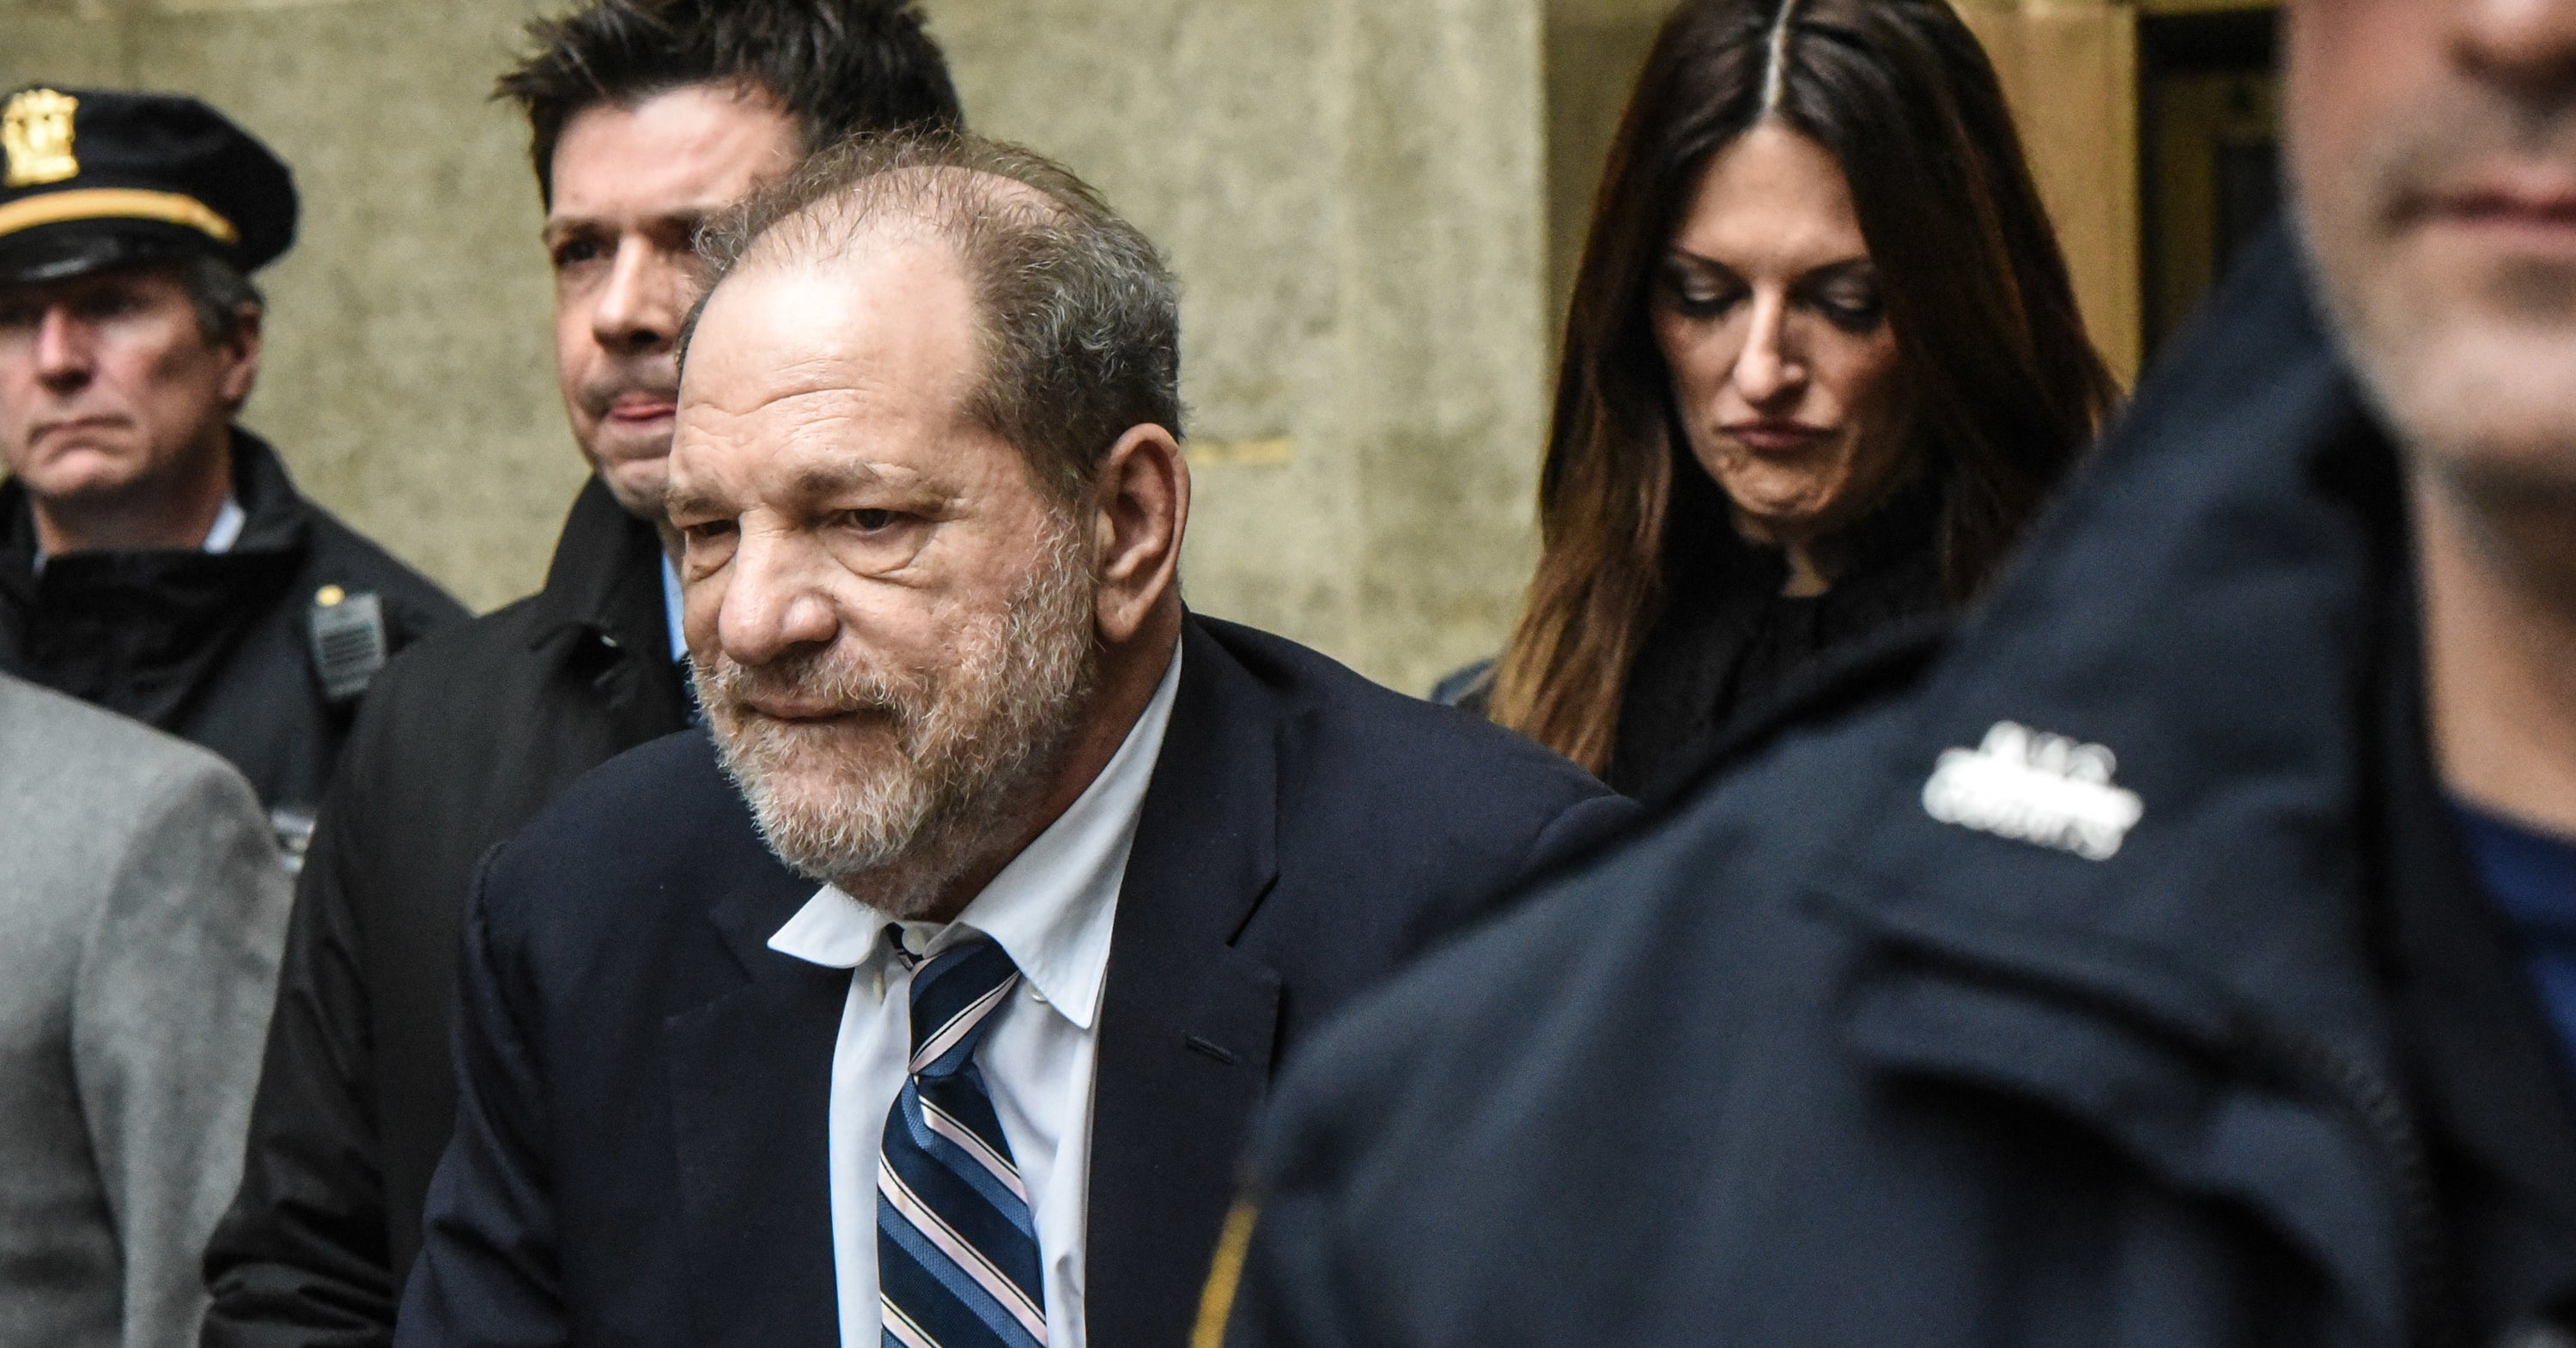 Harvey Weinstein Is Found Guilty Of Rape And Sexual Assault But Acquitted Of The Most Serious Sex Crimes